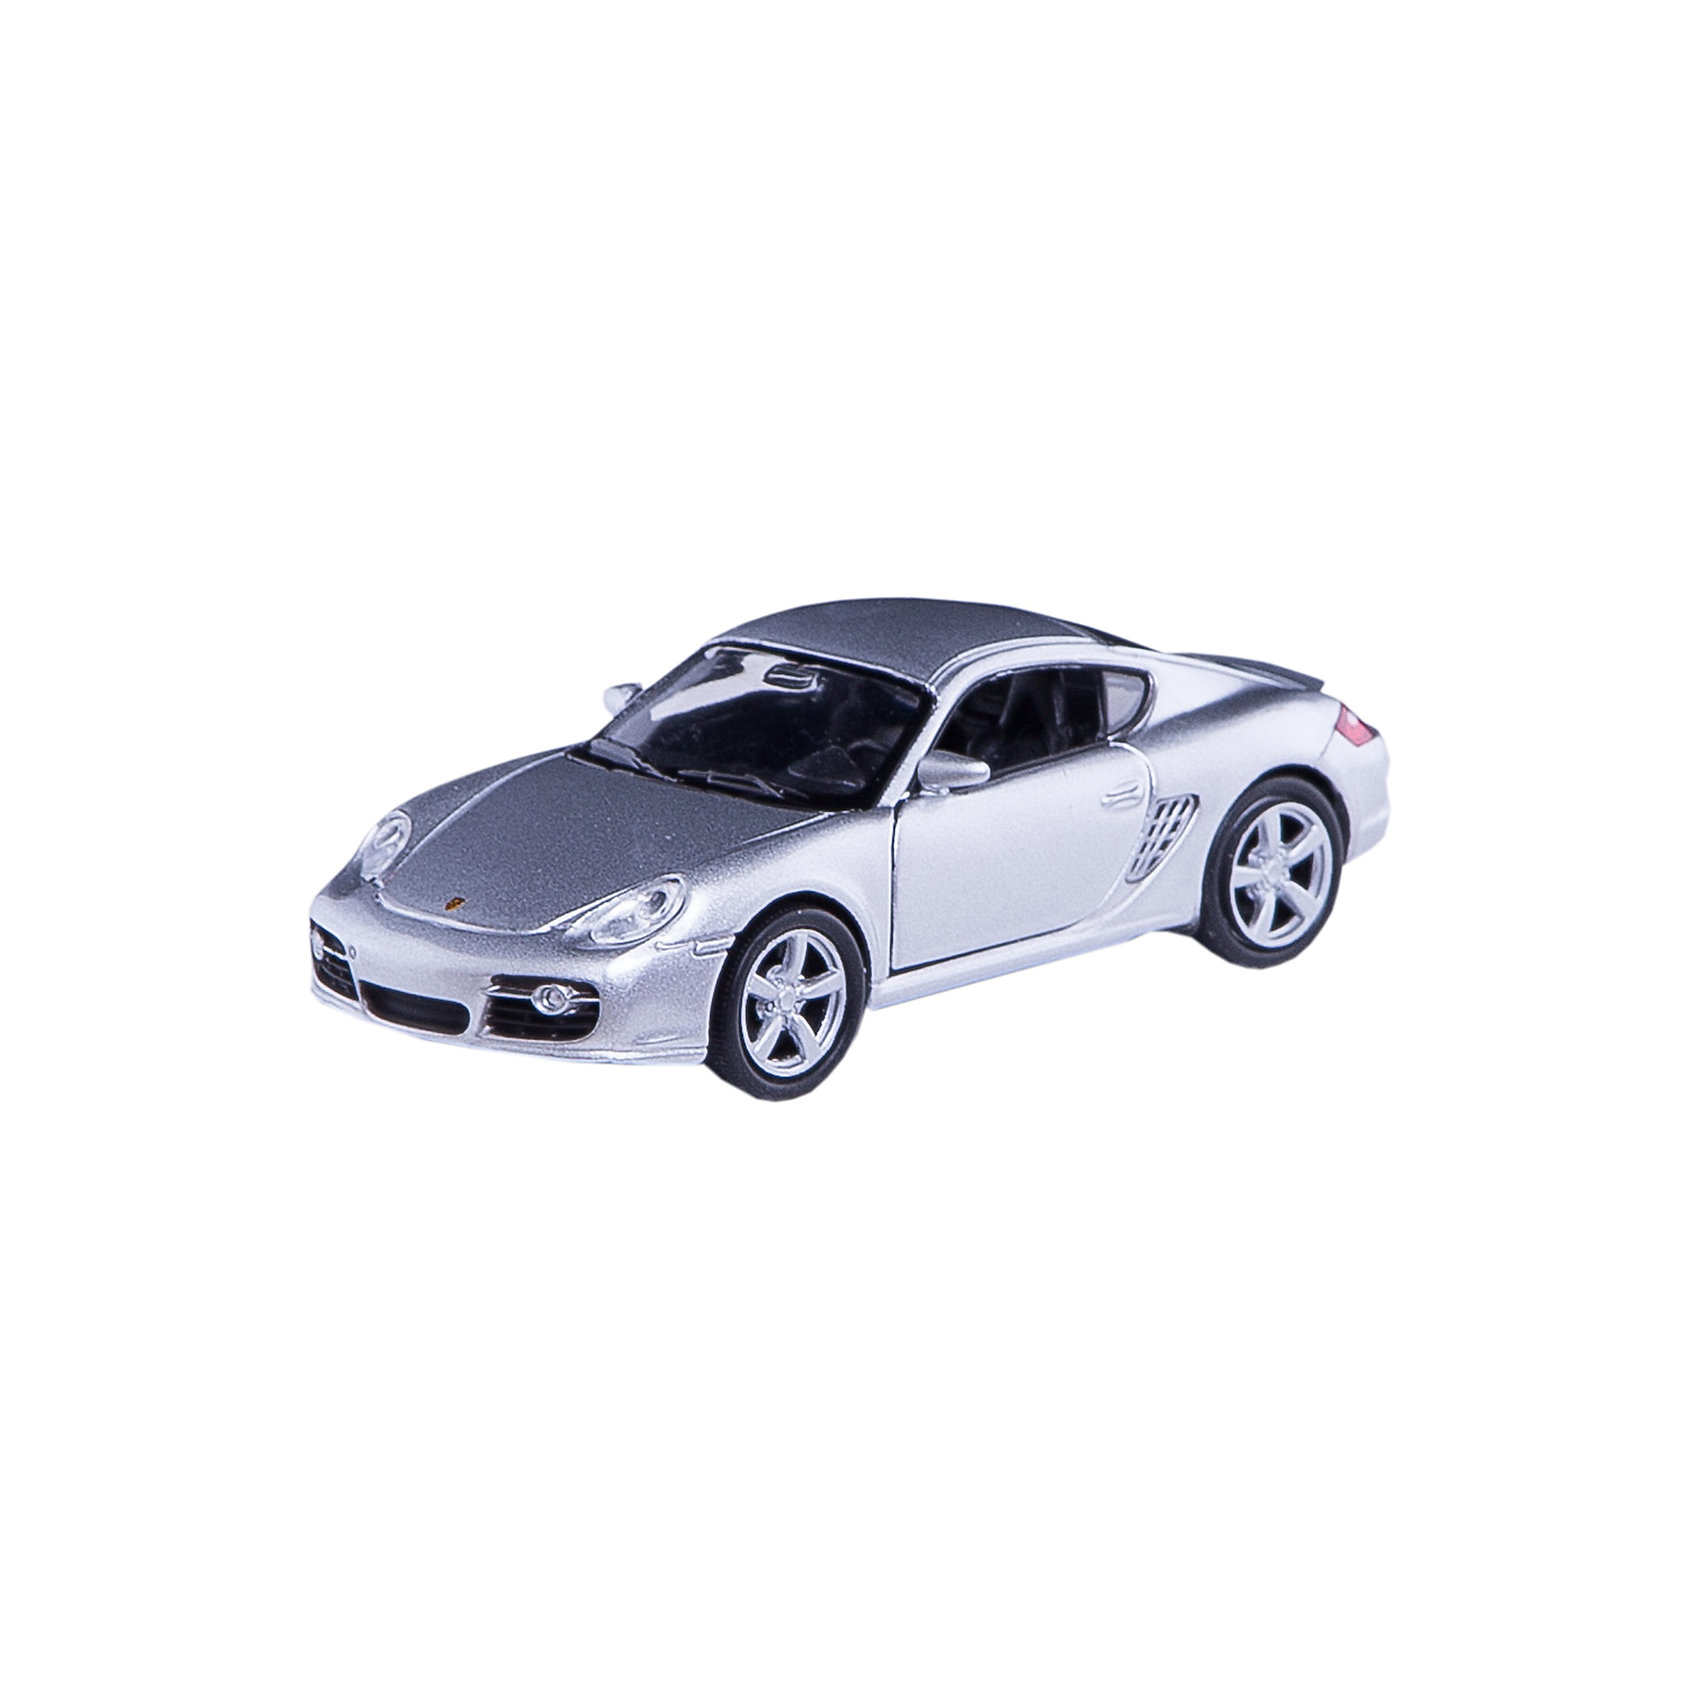 Welly Welly Модель машины 1:34-39 PORSCHE CAYMAN S автомобиль welly nissan gtr 1 34 39 белый 43632